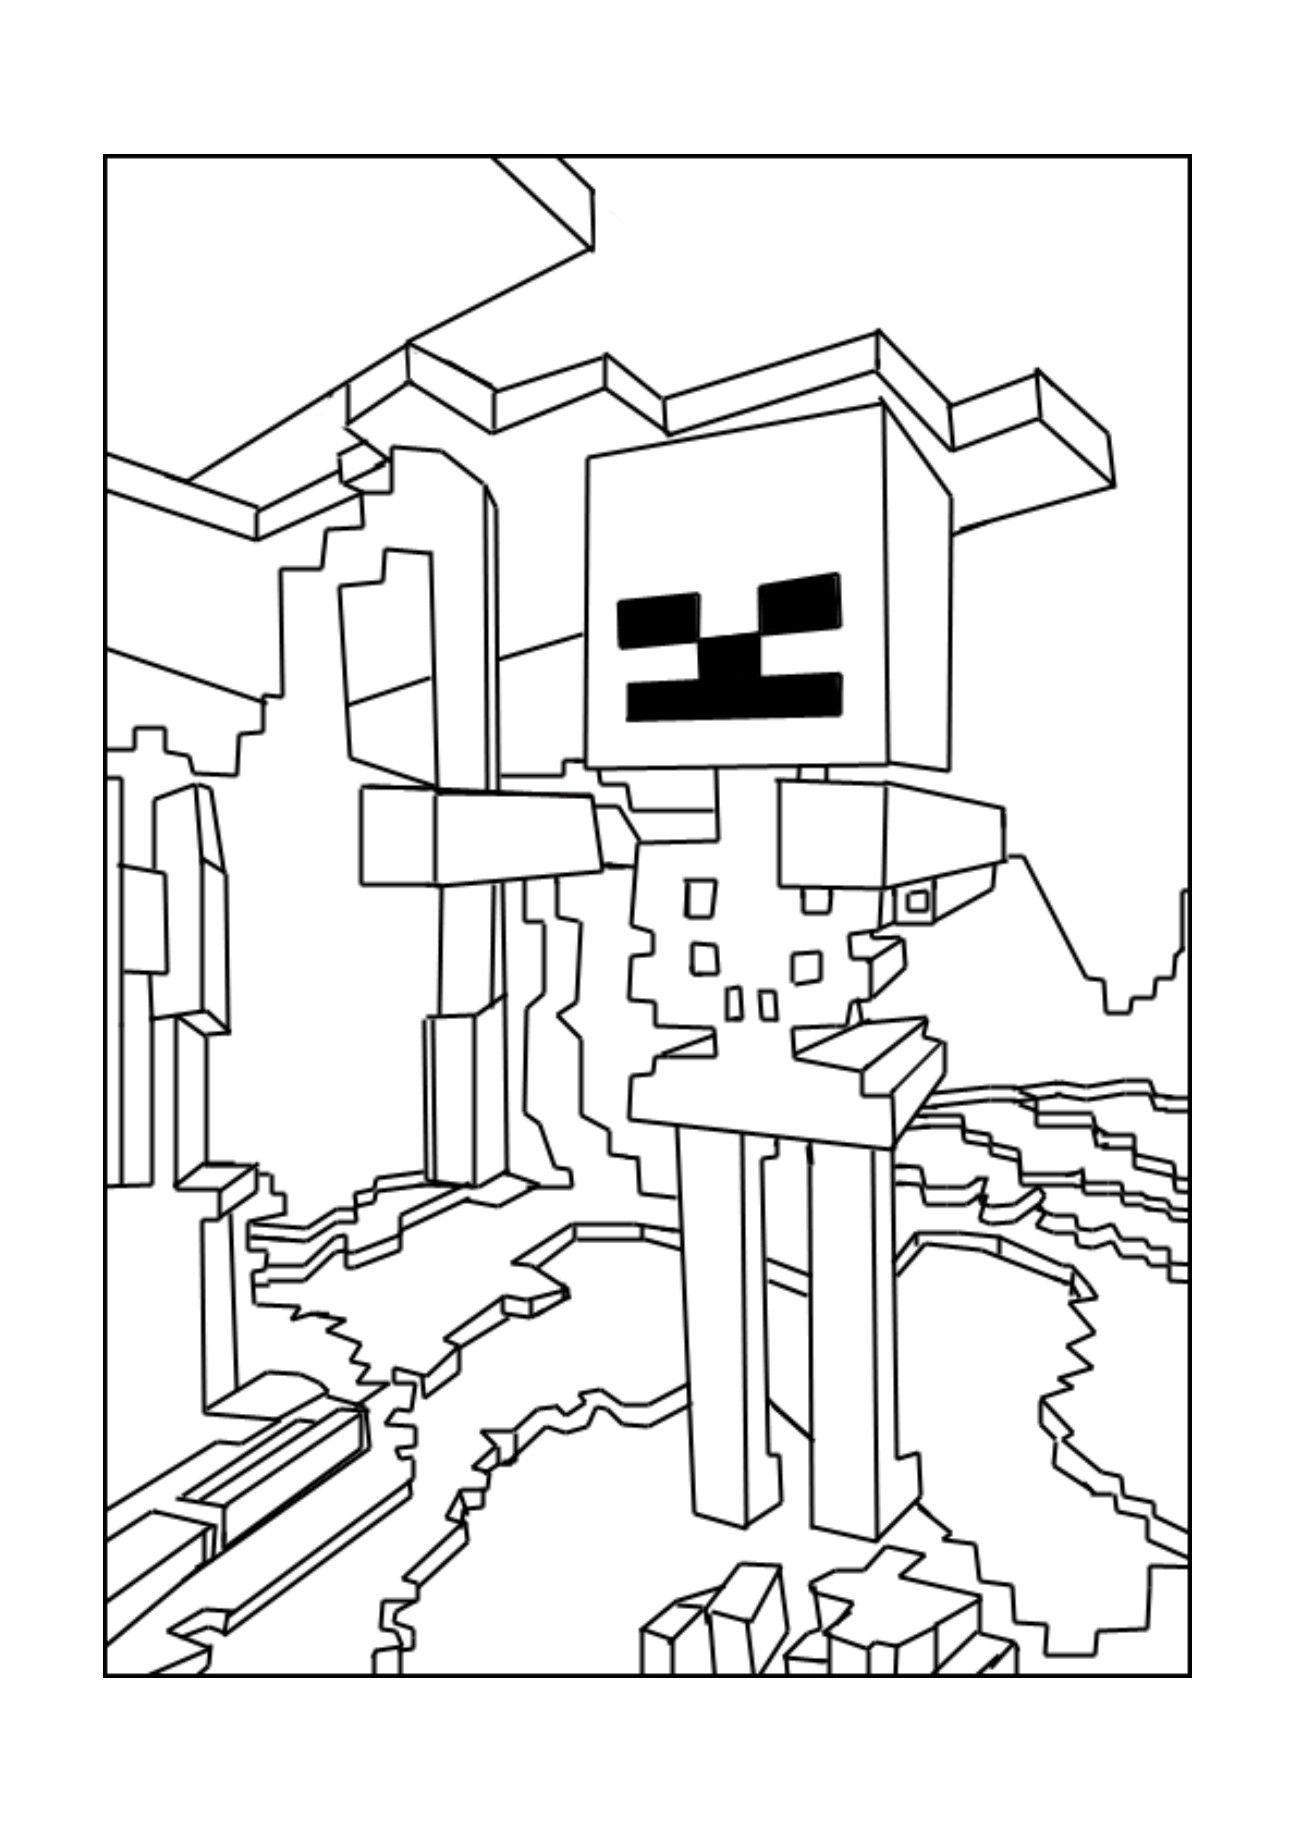 Minecraft Skeleton Coloring Pages To Print Minecraft Coloring Pages Coloring Pages For Kids Coloring Pages Inspirational